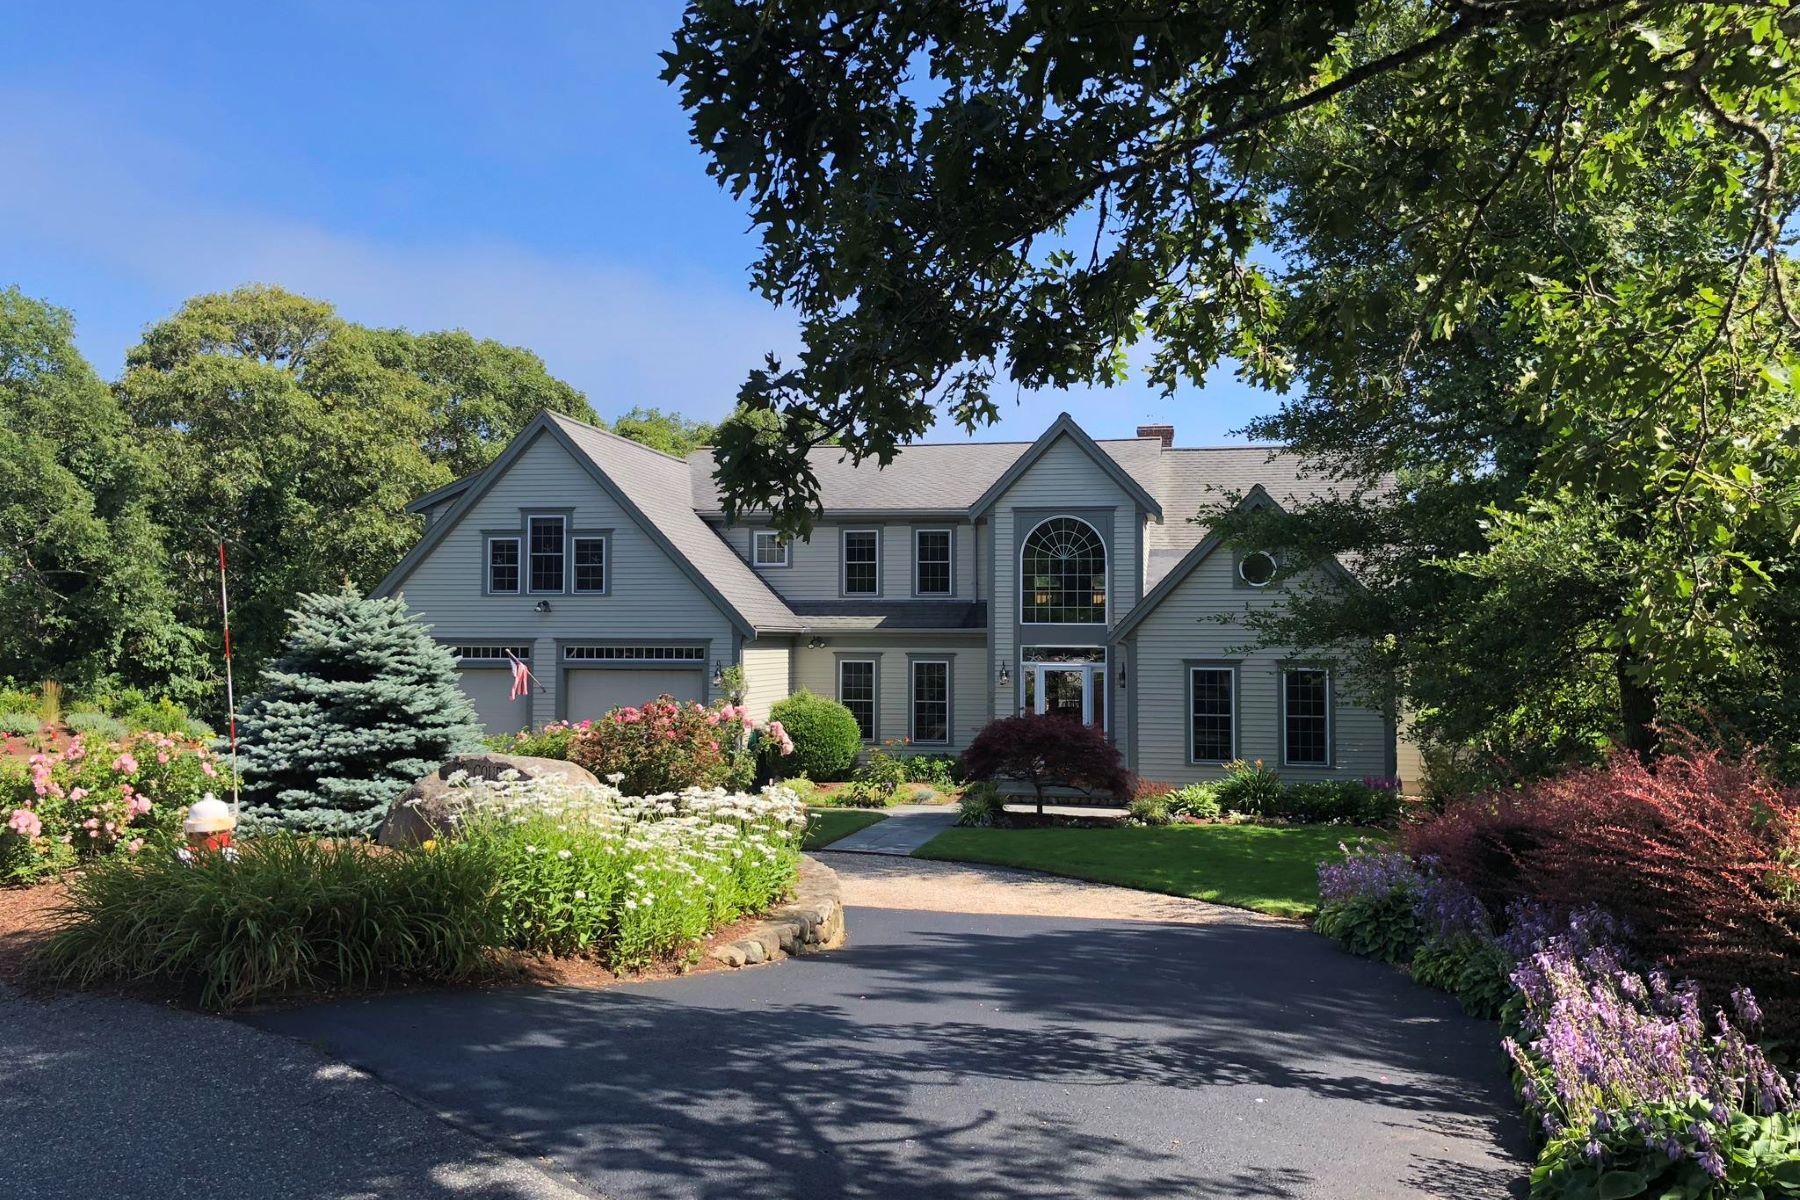 Single Family Home for Active at 70 Court Street, Chatham, MA 70 Court Street Chatham, Massachusetts 02650 United States